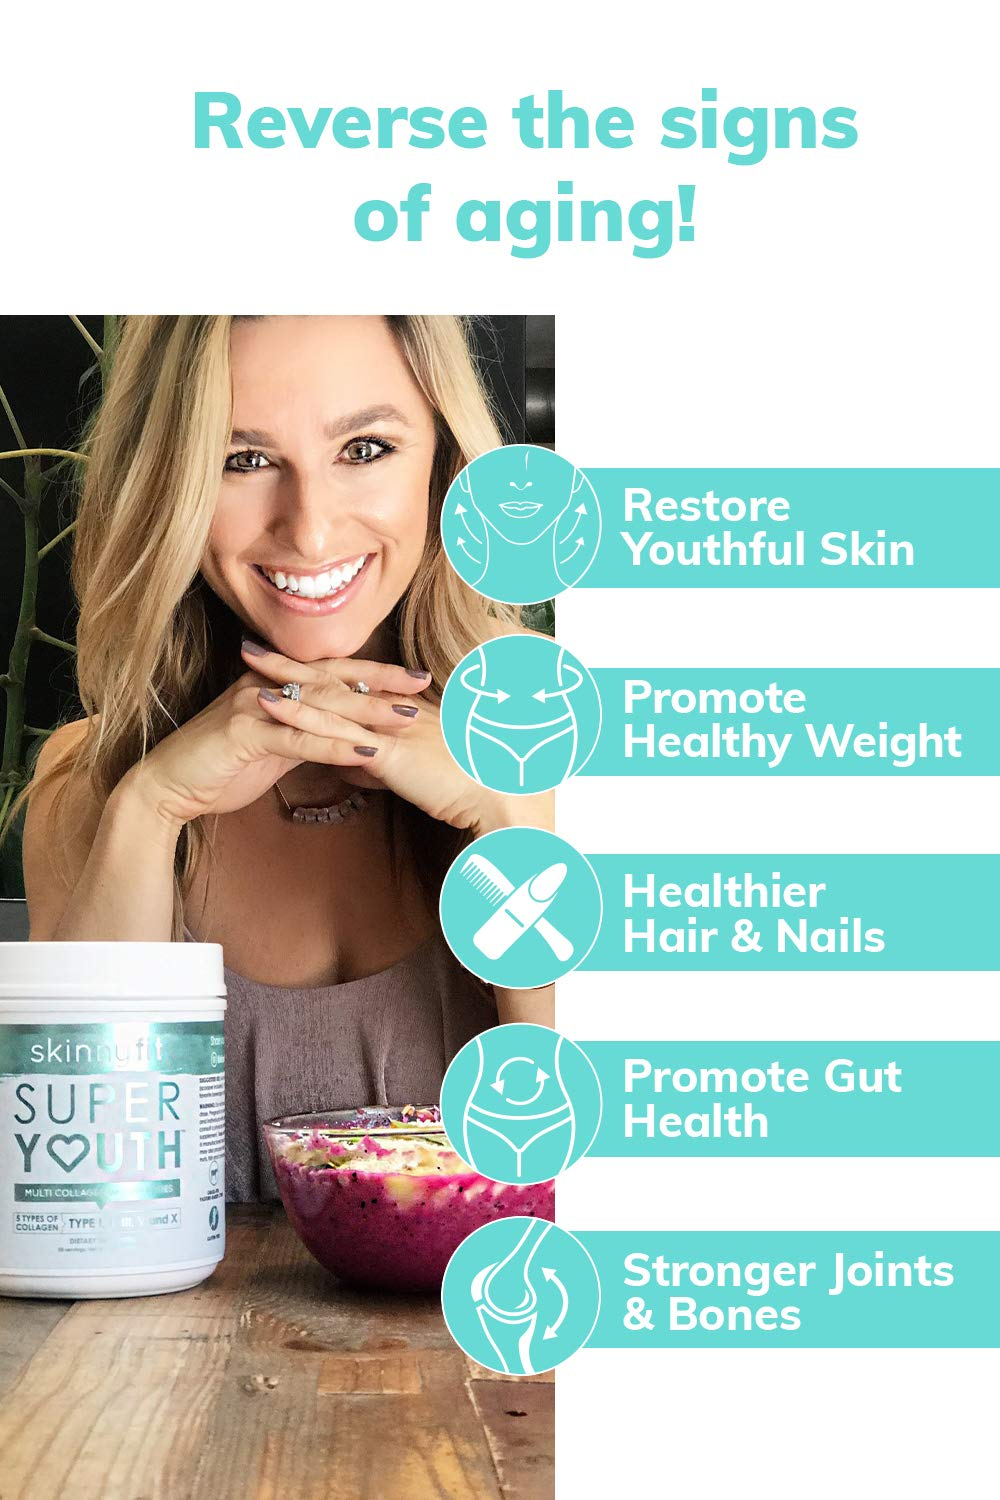 SkinnyFit Super Youth: 5 Types of Collagen Peptides, Hydrolyzed Powder Supplement for Joint & Bone Support, Glowing Skin, Strong Hair & Nails (58 Servings), Pasture Raised, Grass Fed, Cage Free by SkinnyFit (Image #2)